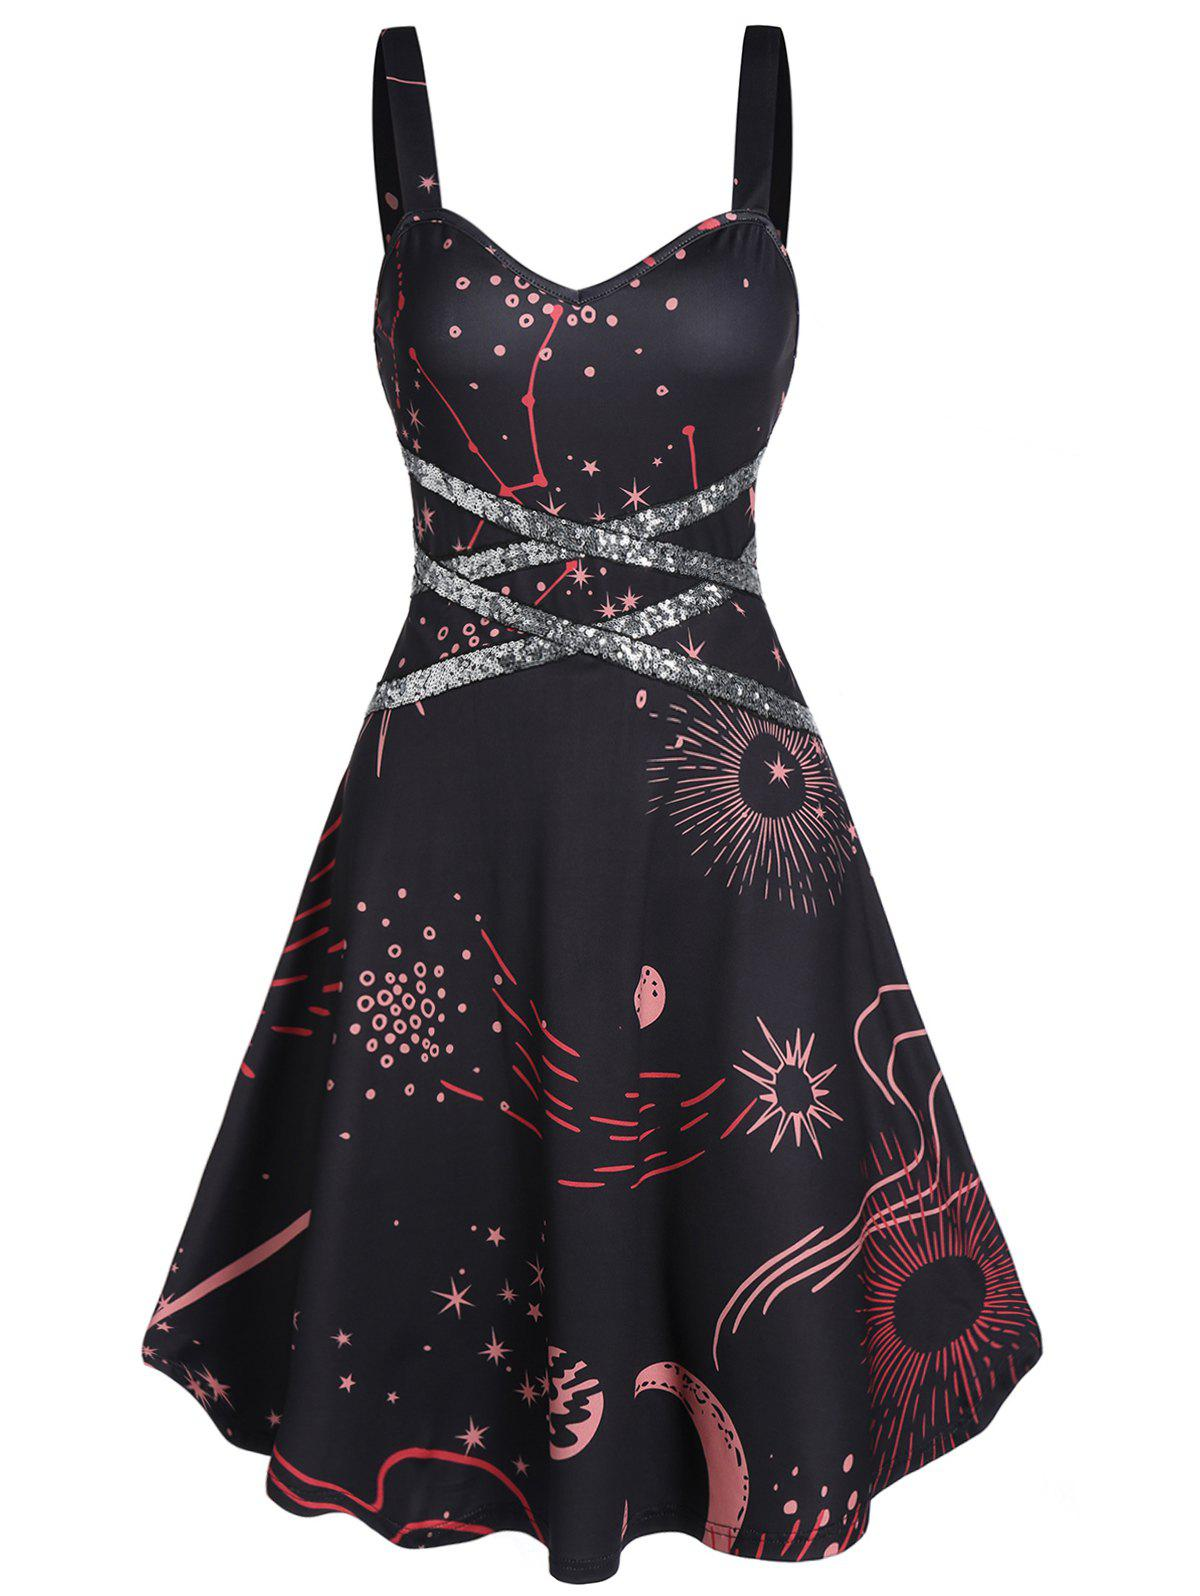 Star Print Sequin Sweetheart Collar A Line Dress - BLACK M